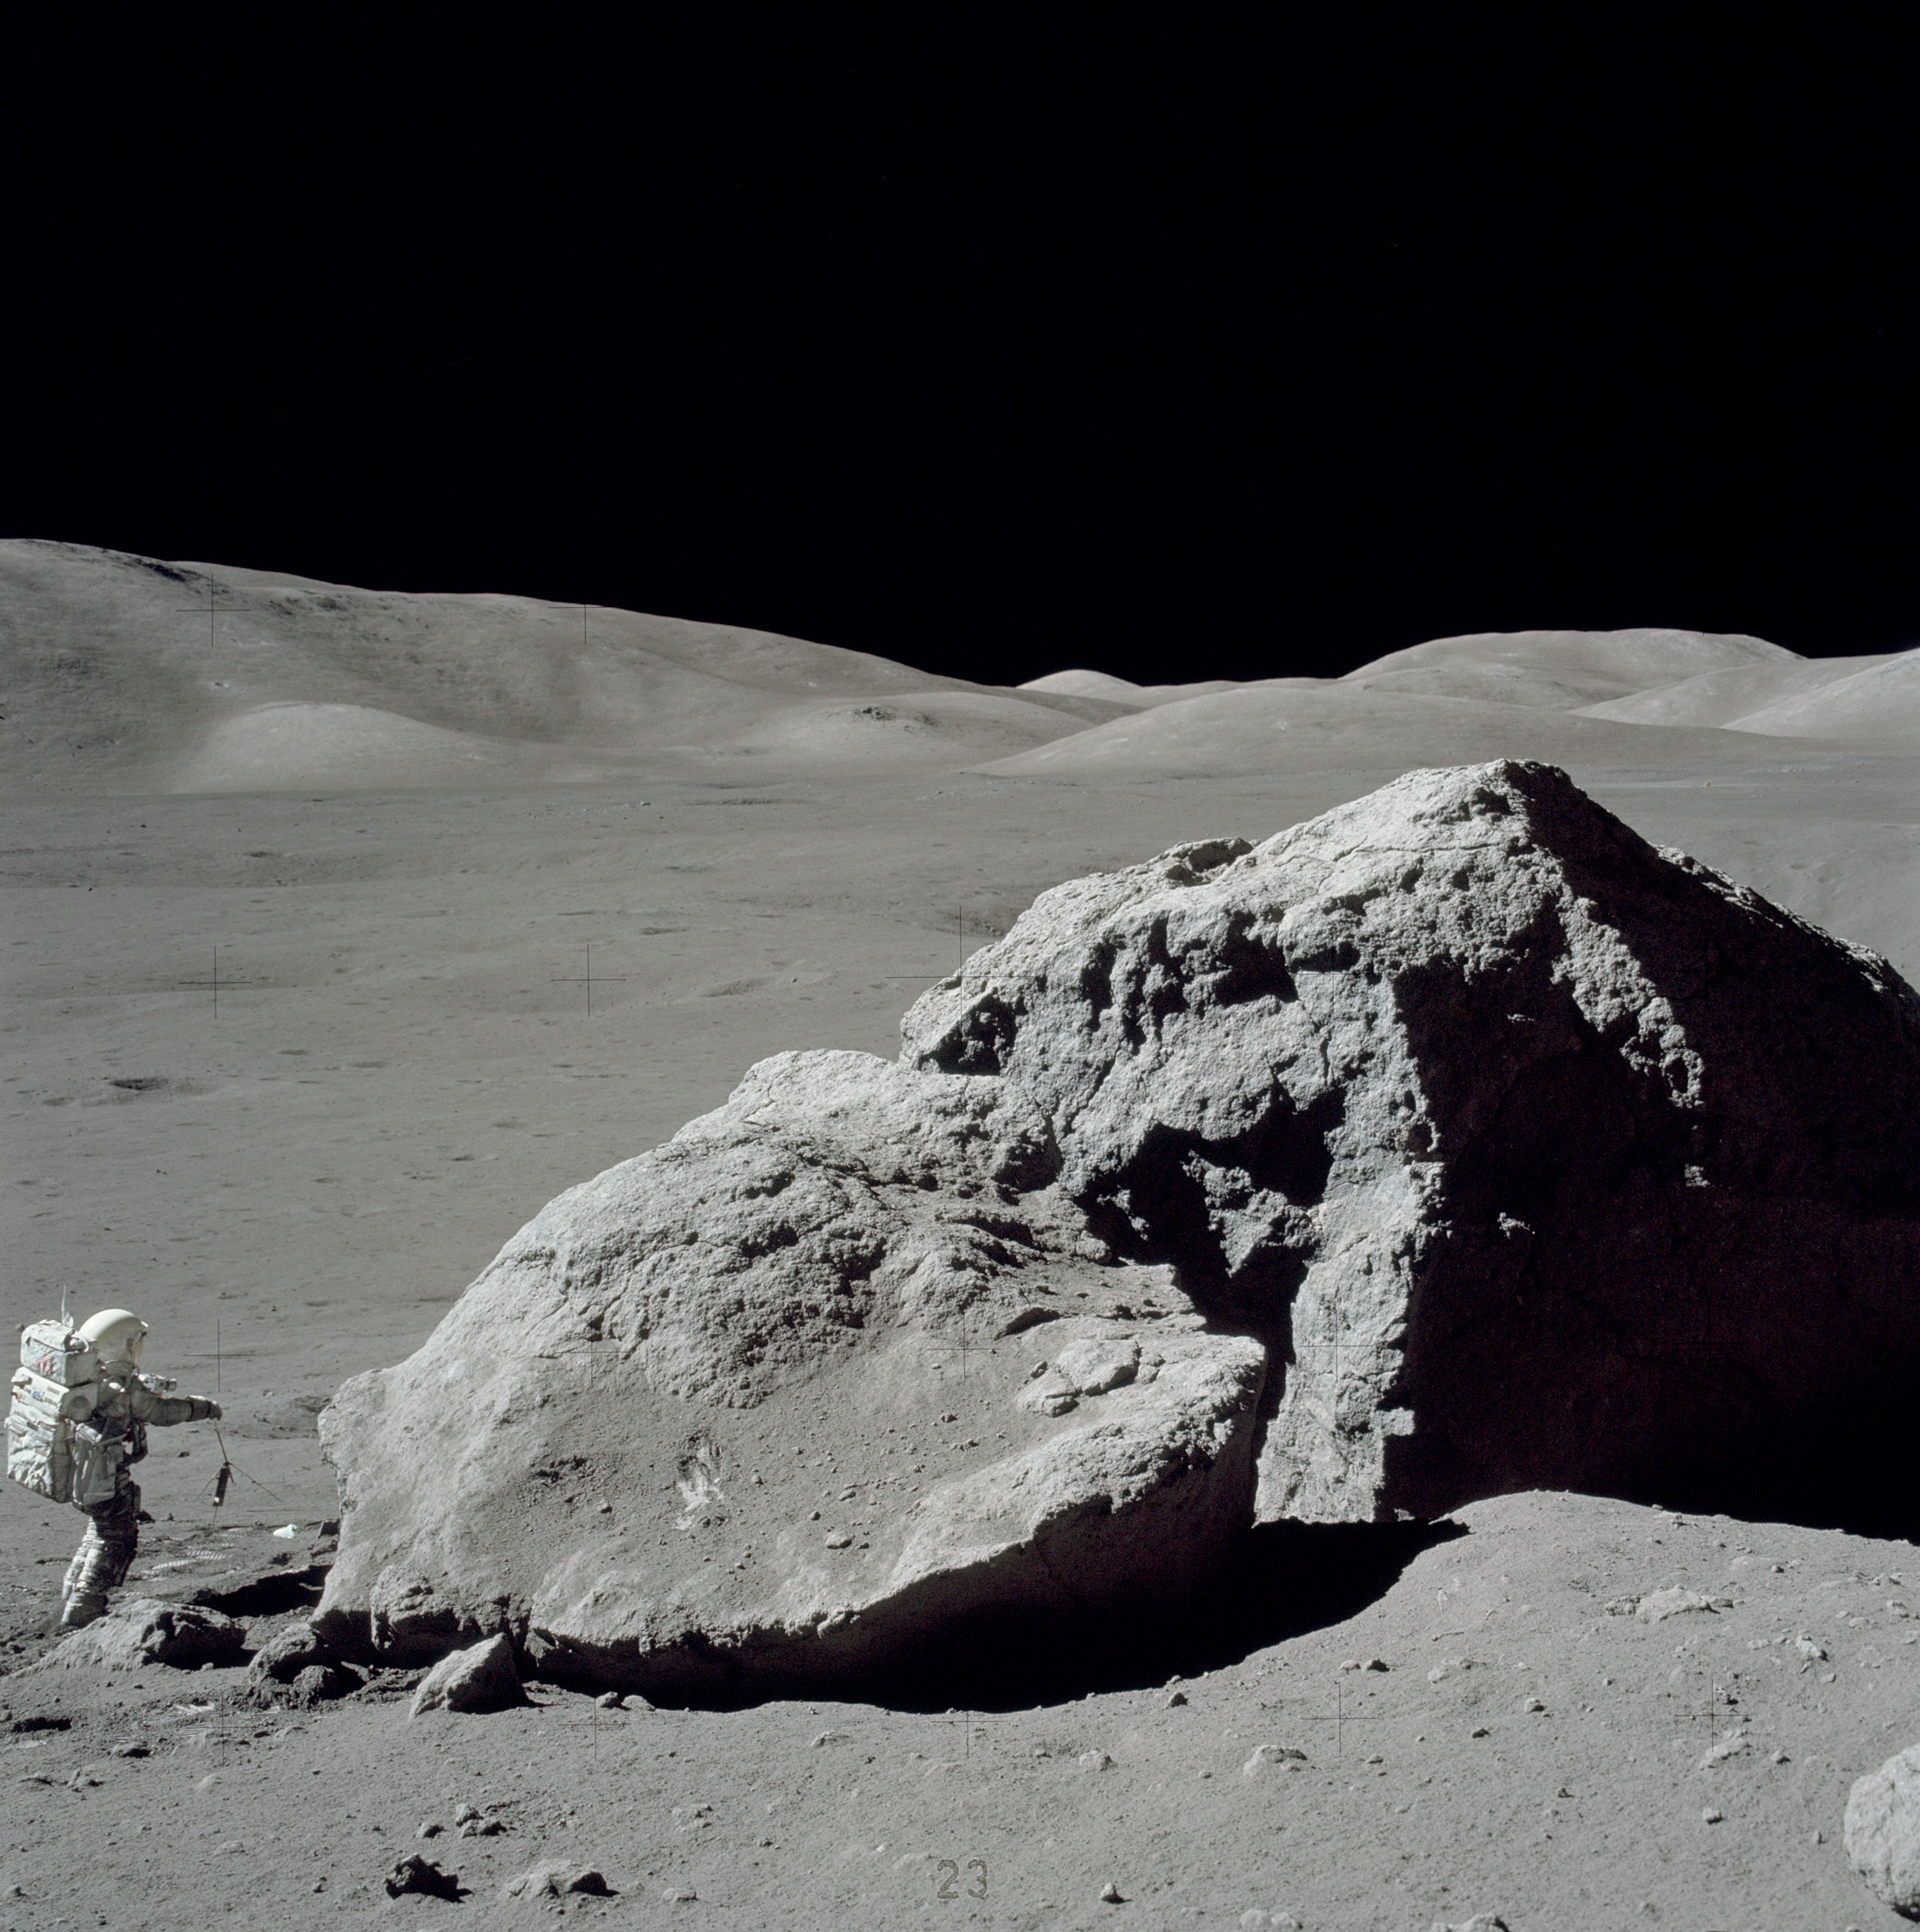 Apollo 17 astronaut Harrison Schmitt standing next to a boulder at Taurus-Littrow during the third EVA.